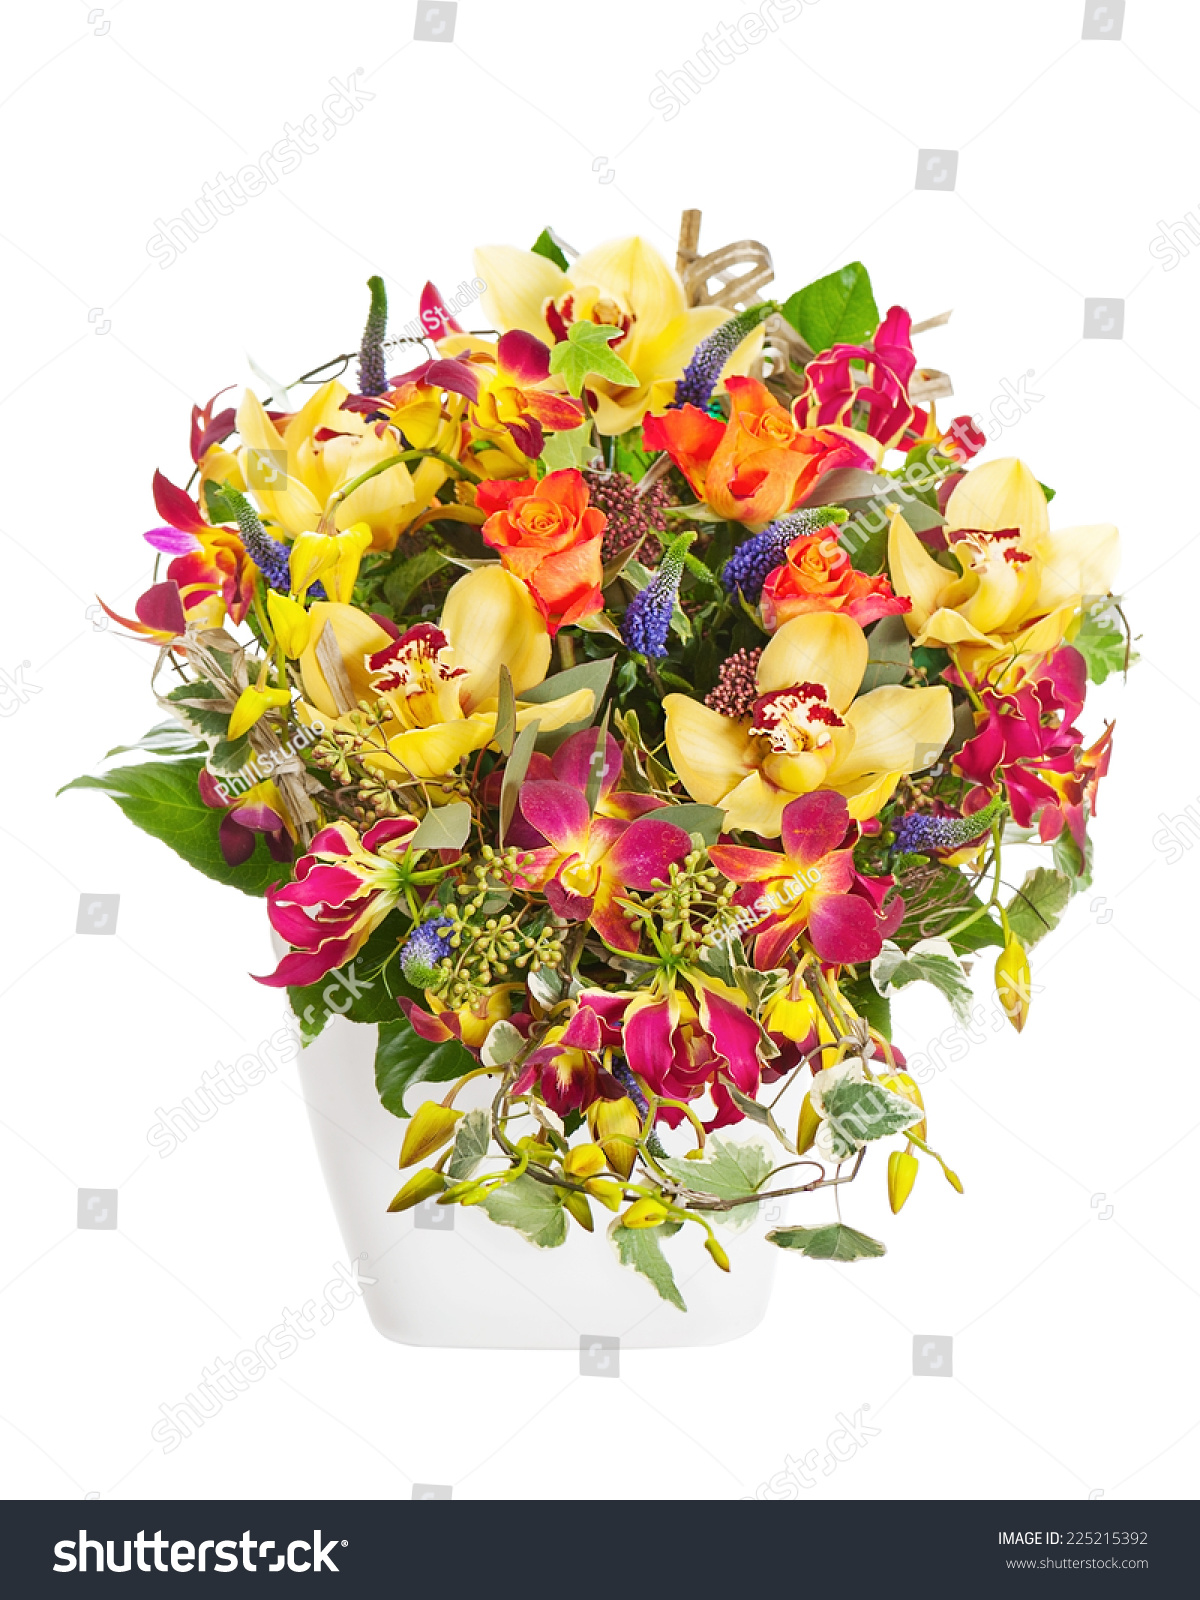 Bouquet From Flowers Arrangement Centerpiece In Vase Isolated On